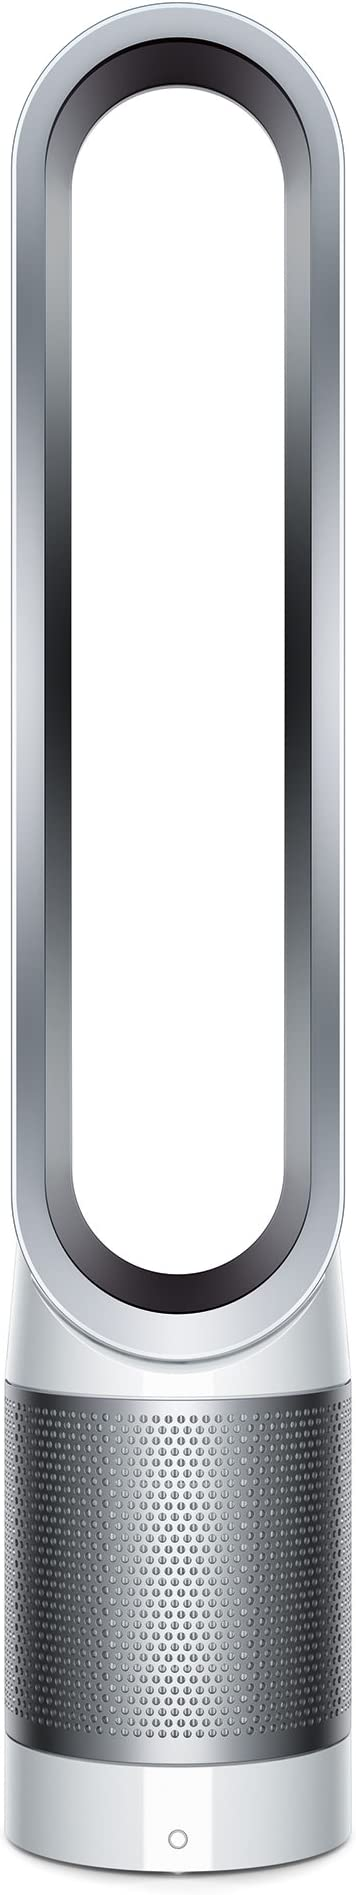 Dyson Pure Cool Link TP02 Wi-Fi Enabled Air Purifier, White/Silver